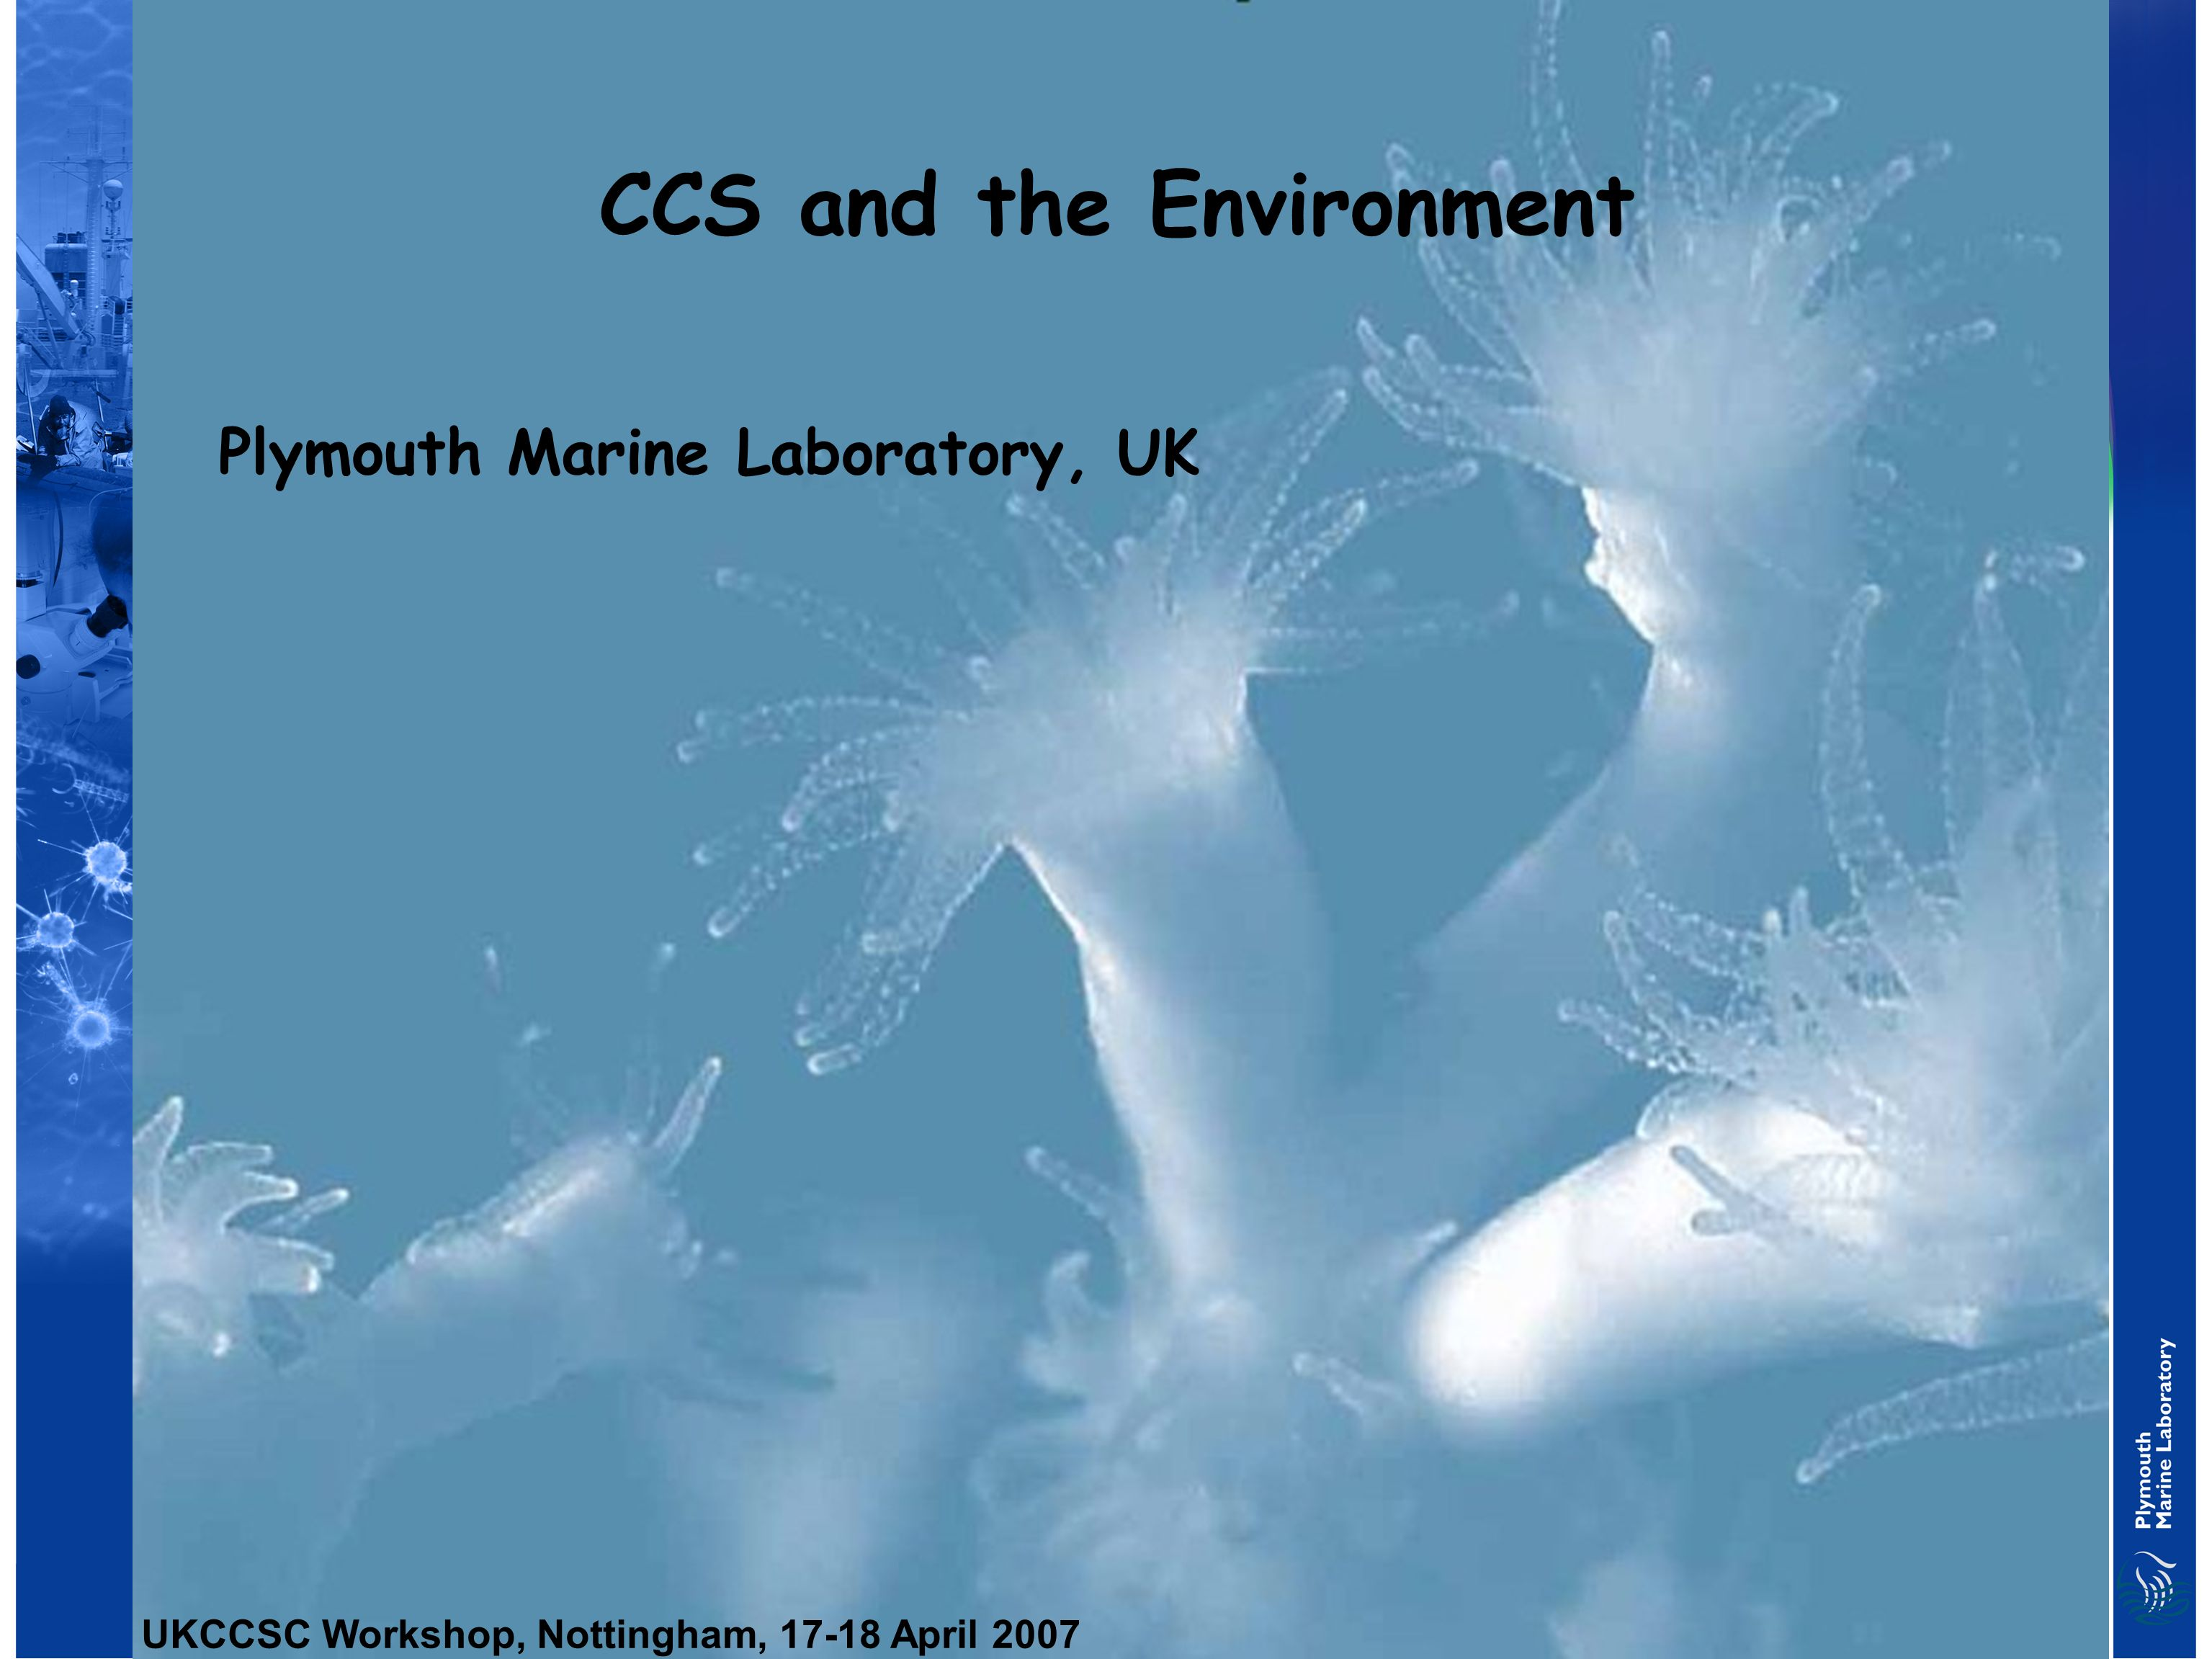 CCS and the Environment Plymouth Marine Laboratory, UK UKCCSC Workshop, Nottingham, 17-18 April 2007